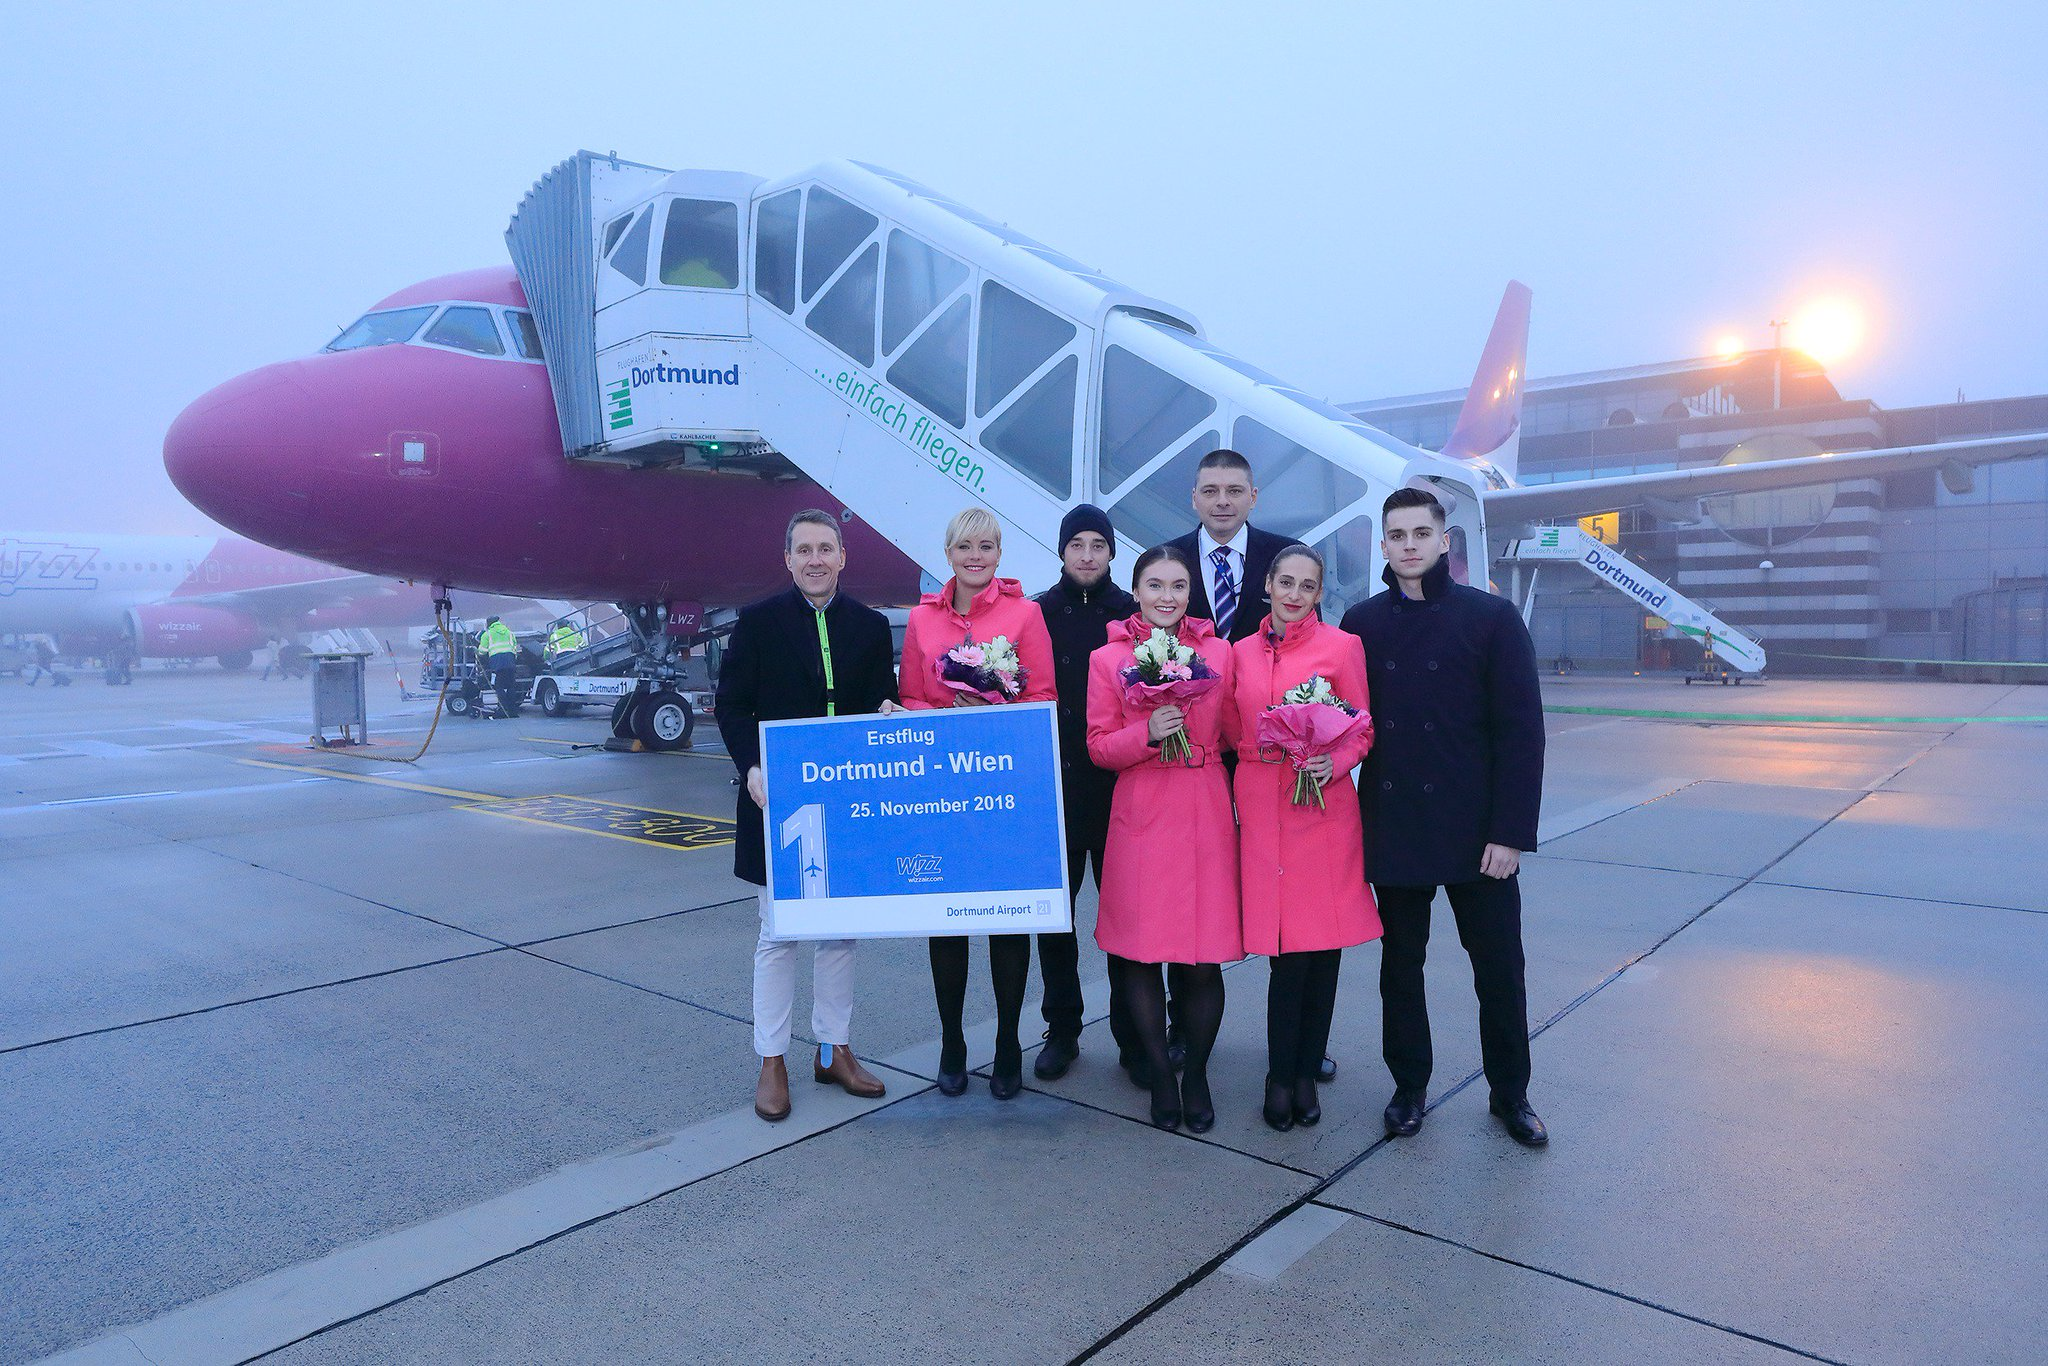 Wizz Air On Twitter Wizznews Today We Were Celebrating The First Wizz Flight Between Vienna And Dortmund Will You Be Flying With Us On This New Route See You On Board